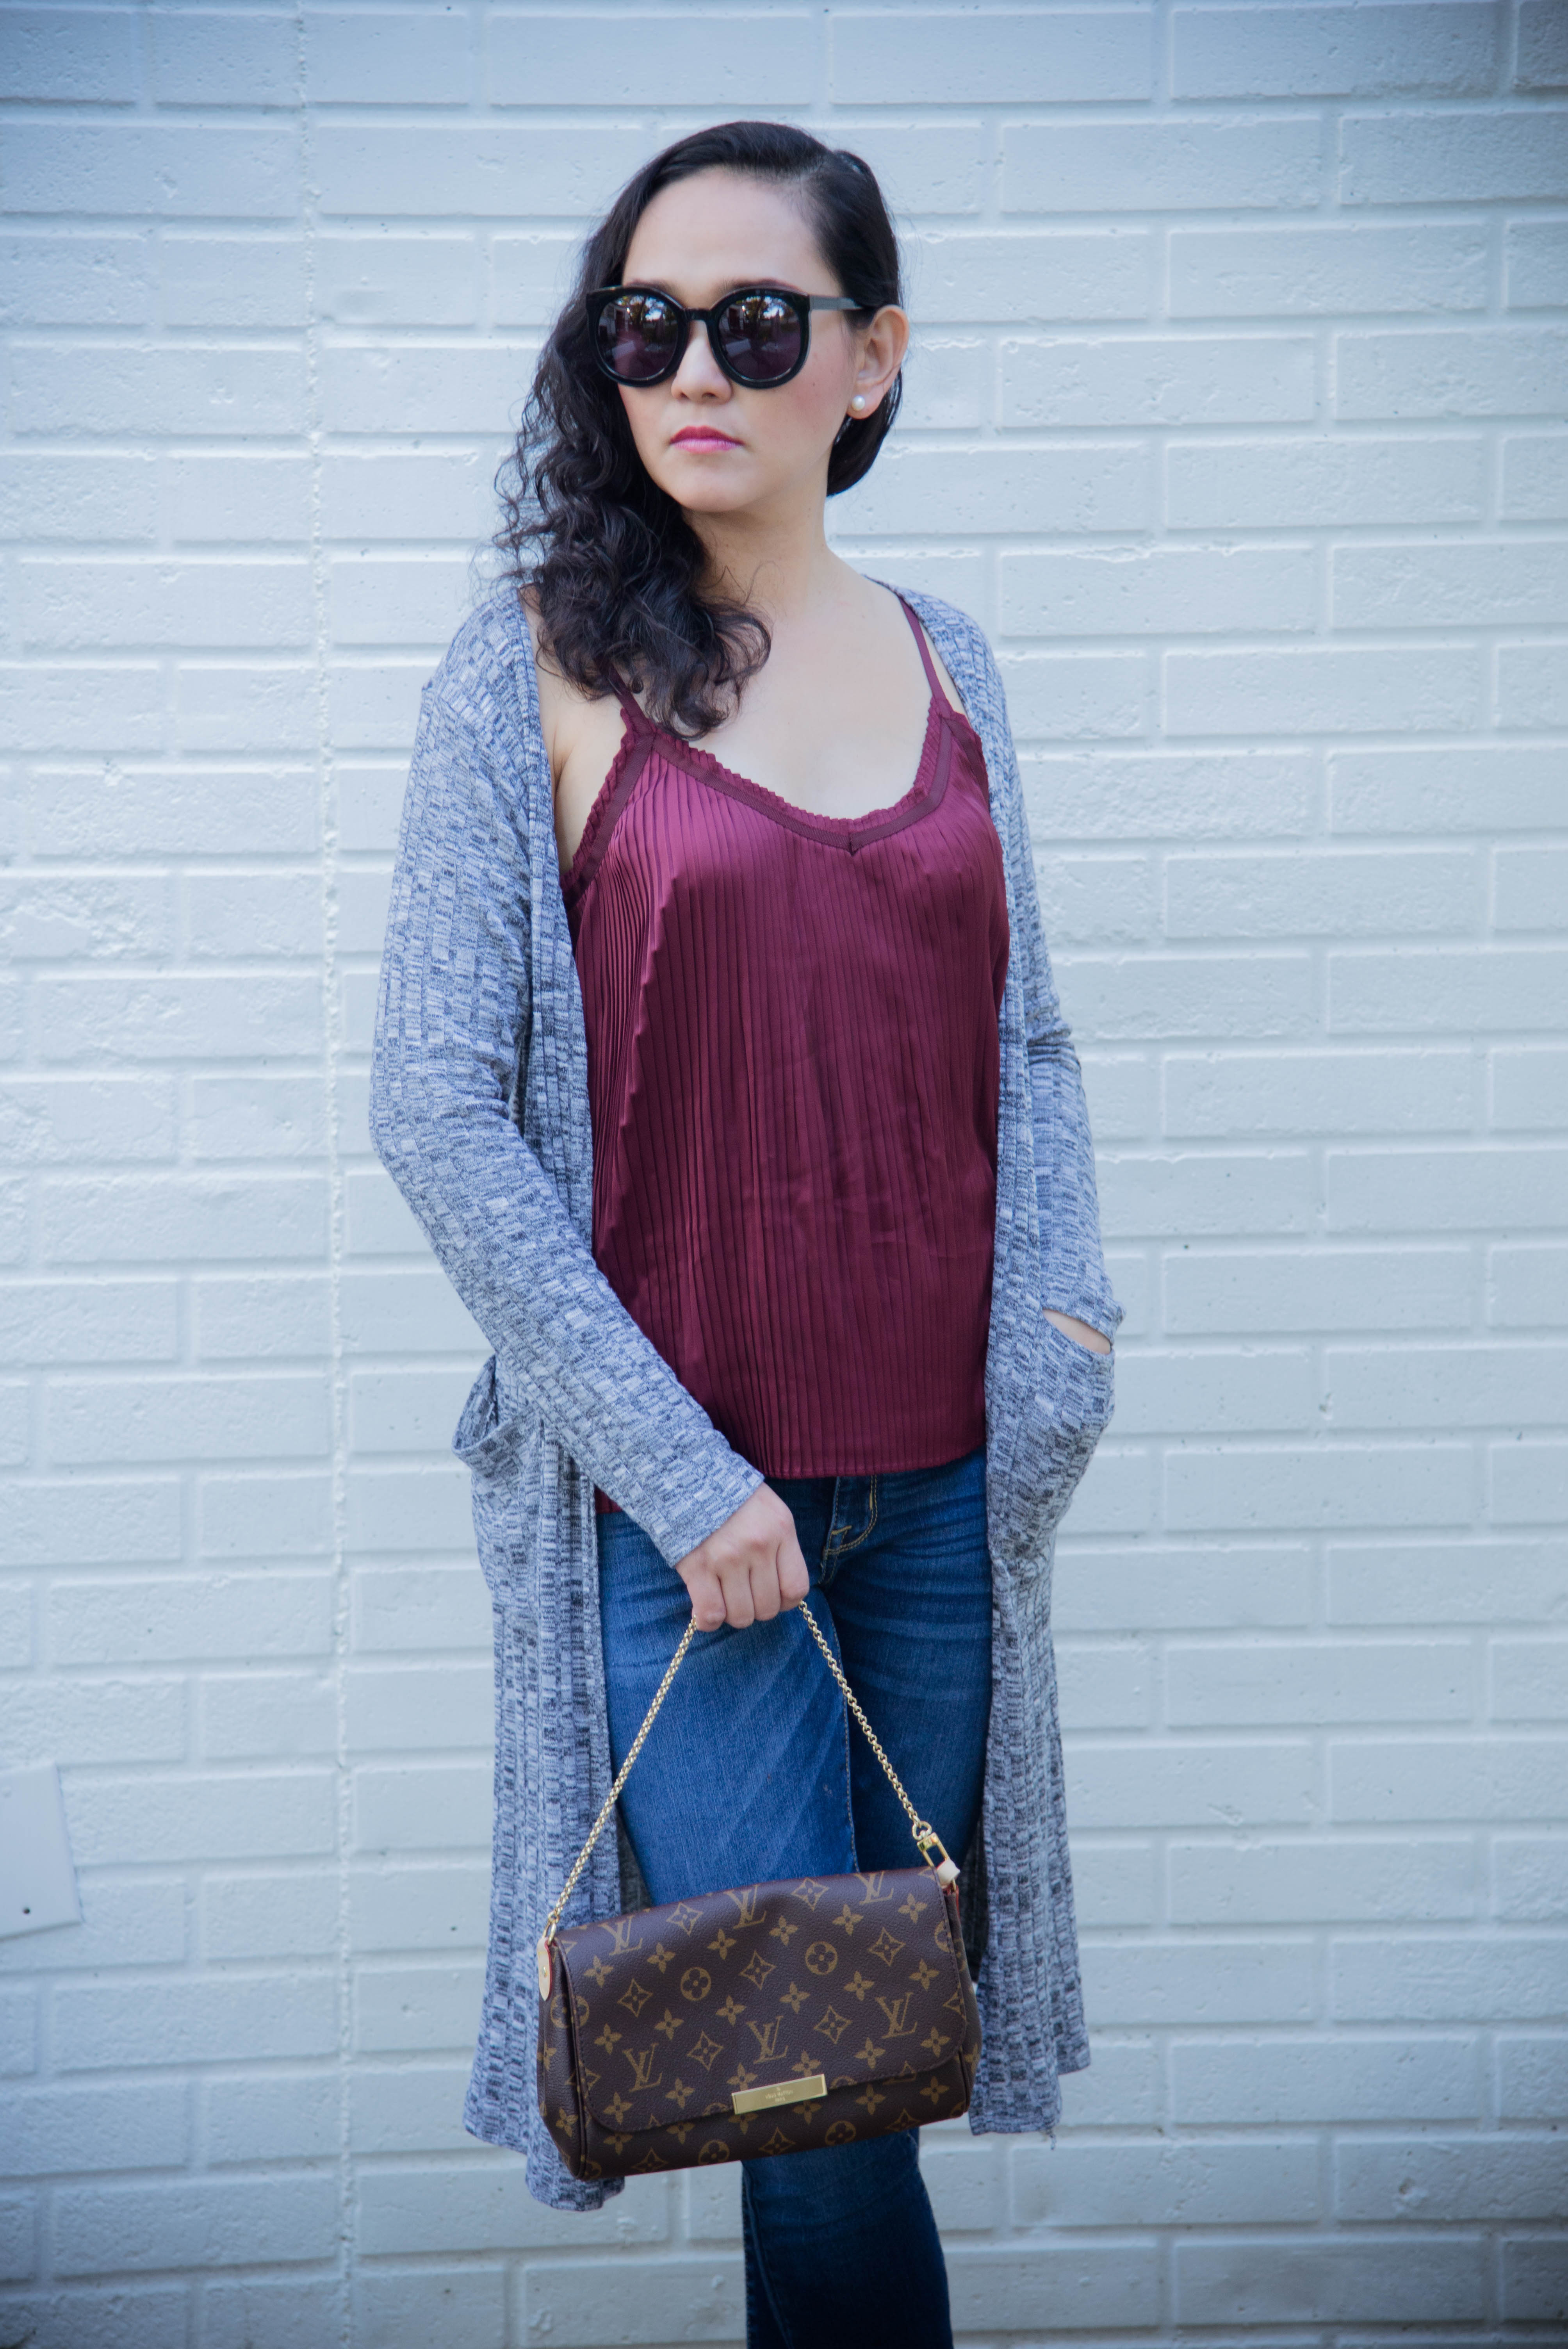 Fall Layering with a Pop of Chic Red Velvet